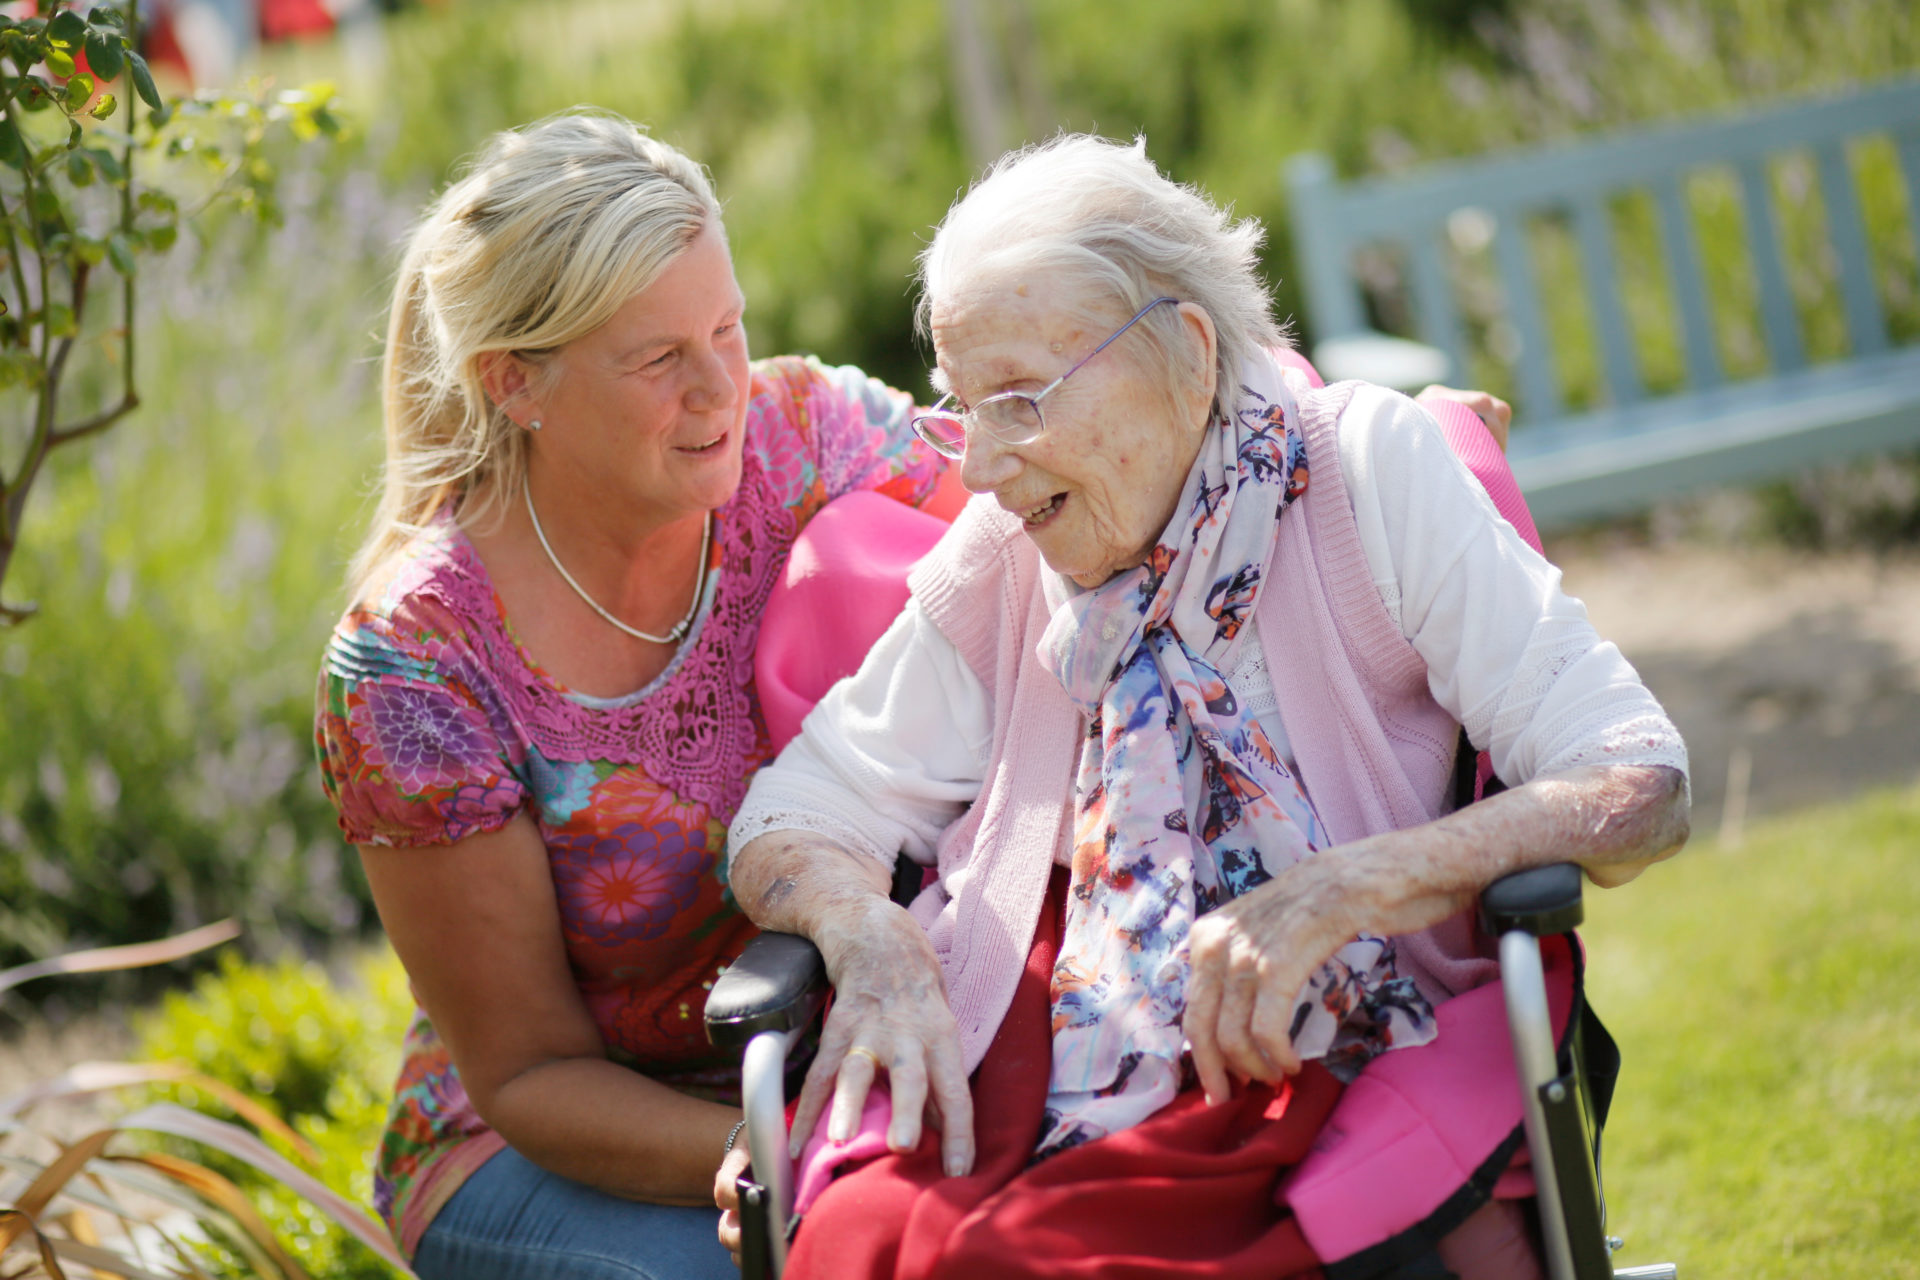 UGLE - Freemasons supports 33,000 unpaid carers with funding for essential items, counselling and breaks